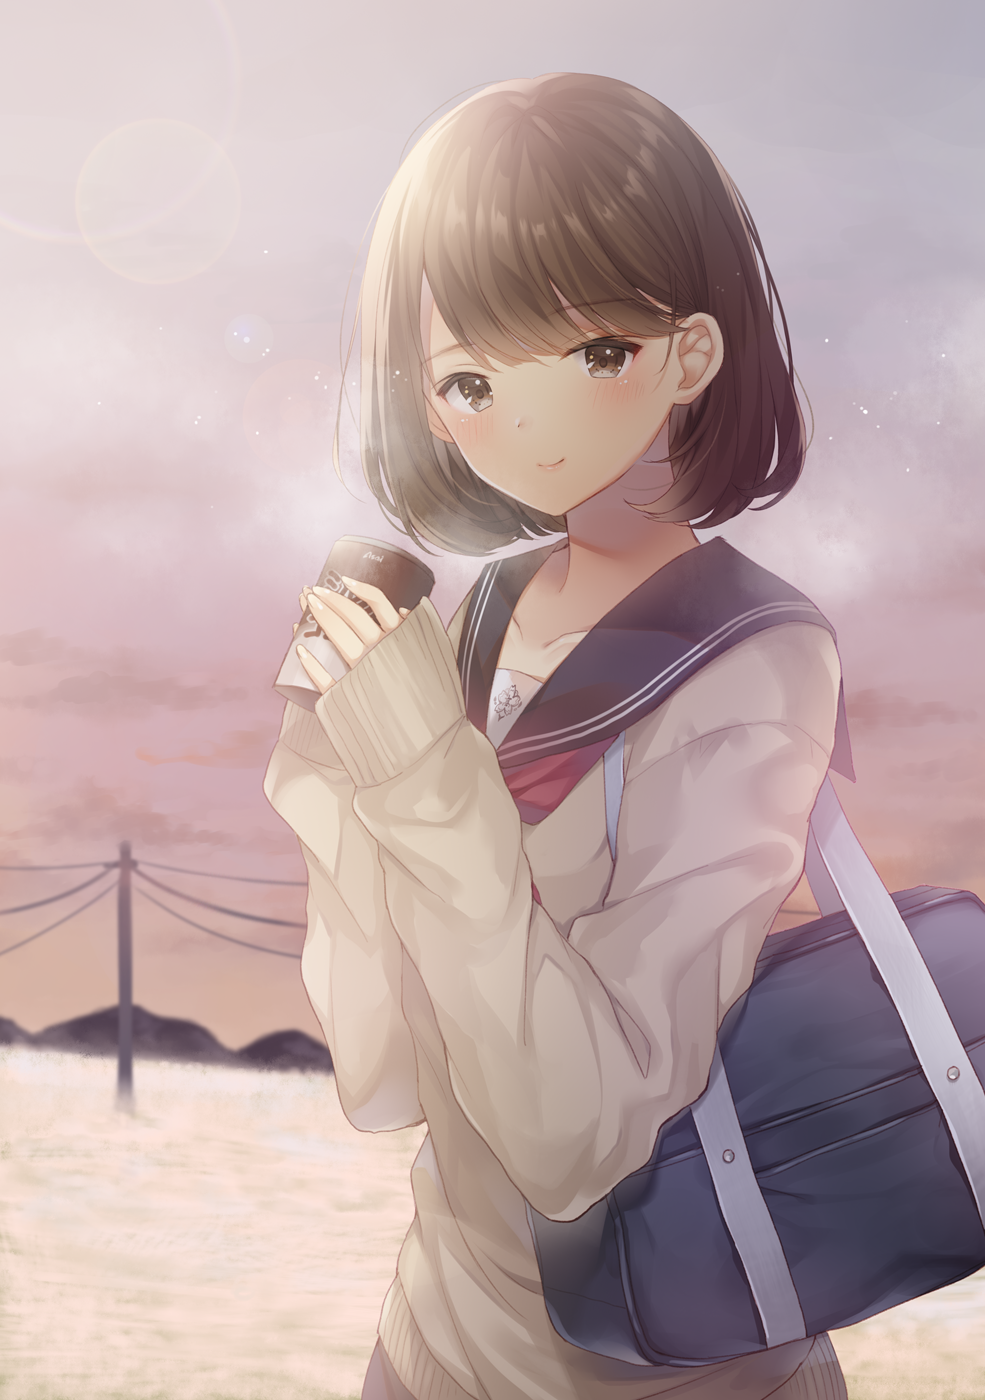 1girl bag bang black_sailor_collar blush brown_eyes brown_hair closed_mouth clouds cloudy_sky commentary_request cup day eyebrows_visible_through_hair finger_gun highres holding holding_cup long_sleeves looking_at_viewer mountainous_horizon neckerchief noda_shuha original outdoors red_neckwear sailor_collar school_bag school_uniform serafuku short_hair sky sleeves_past_wrists smile solo steam telephone_pole upper_body